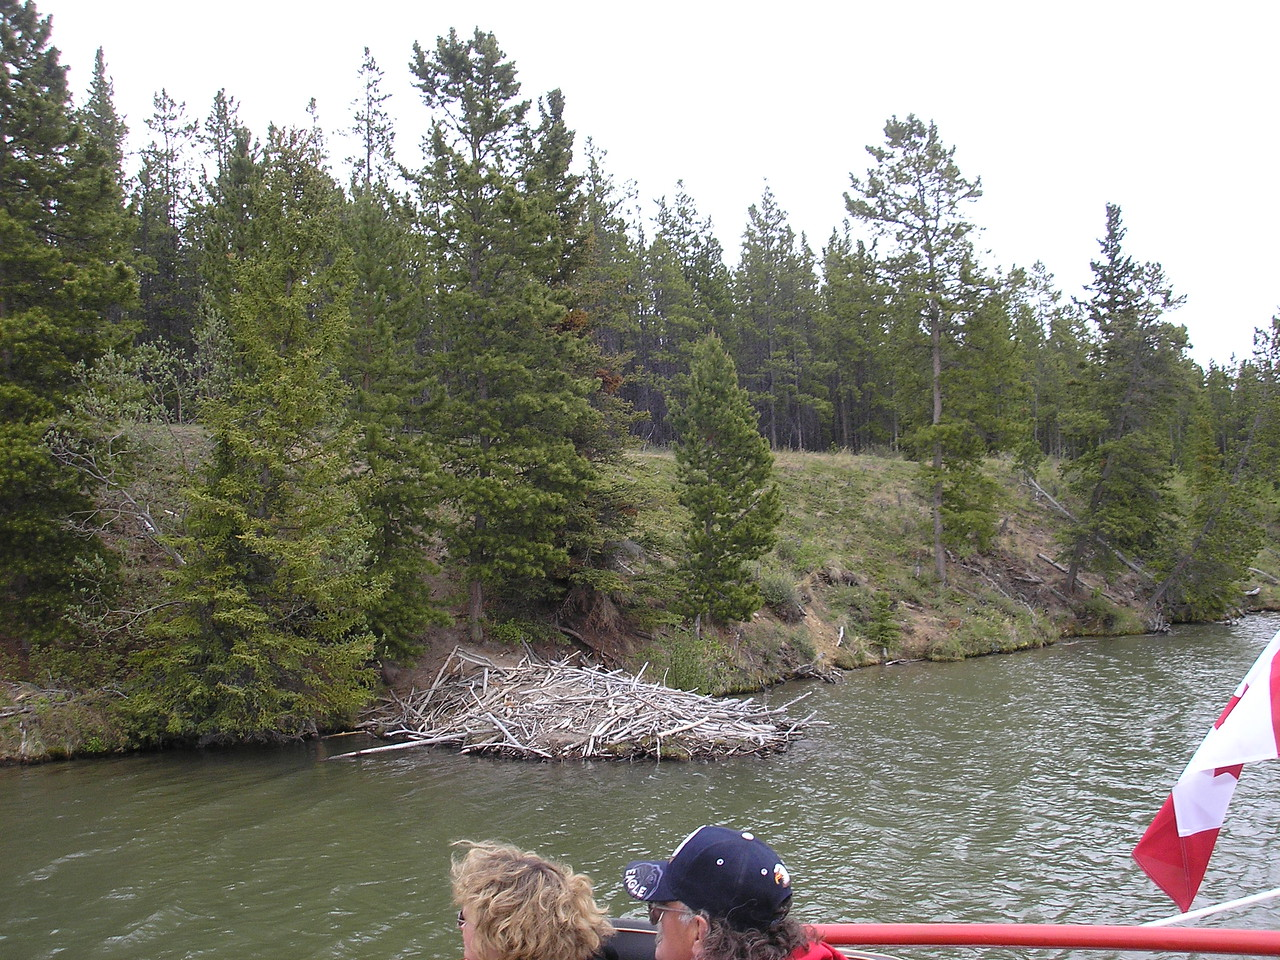 An old Beaver Den is along the bank of the Yukon River.